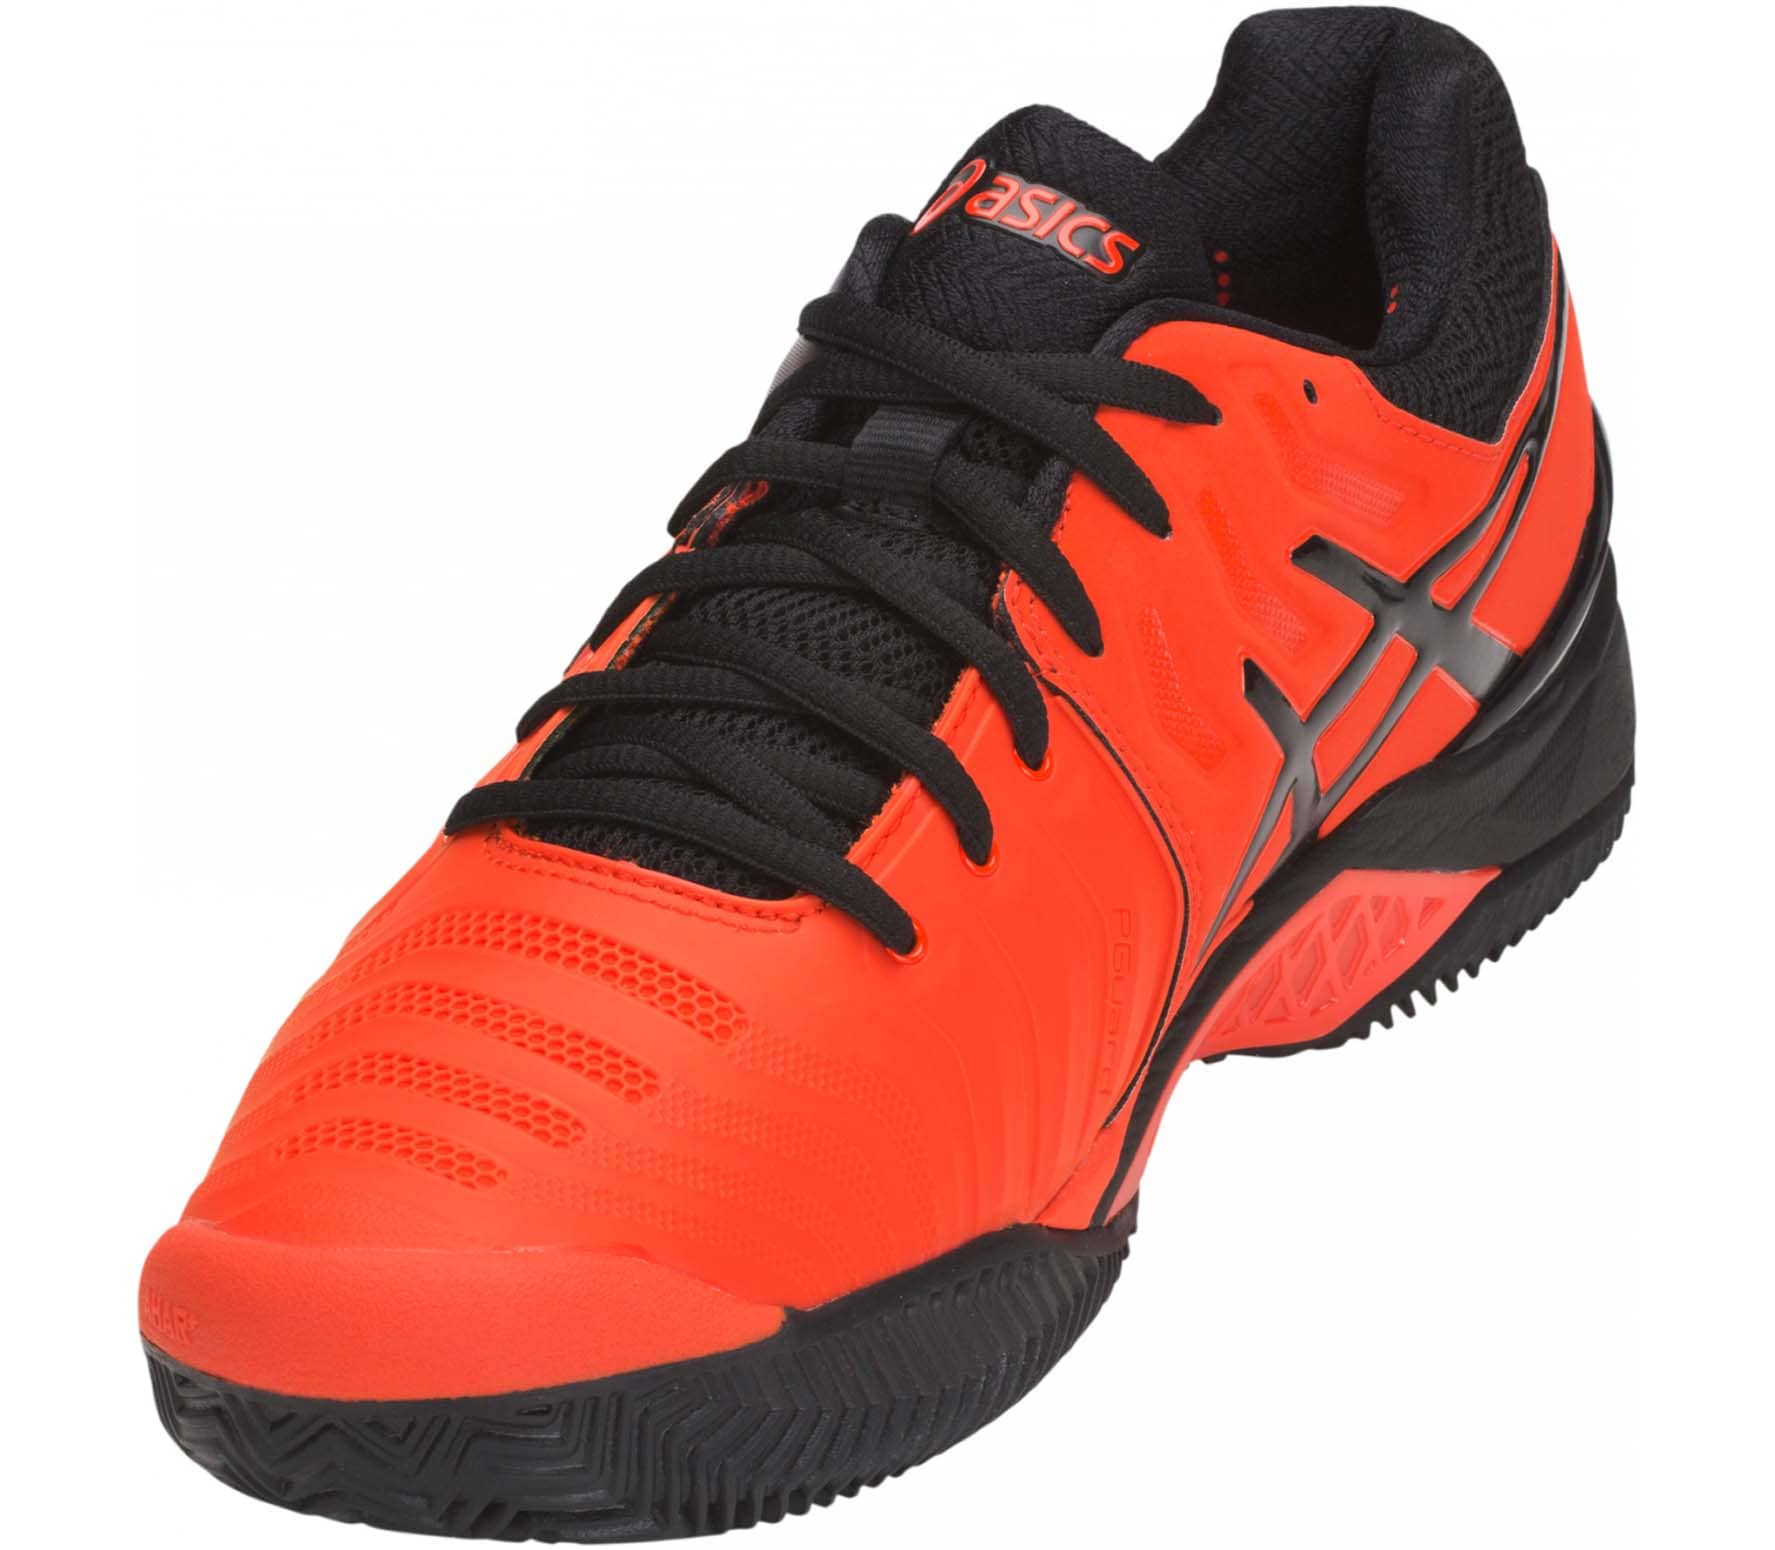 f9f23a7091 ASICS - GEL-Resolution 7 Clay men's tennis shoes (red/black) - buy ...